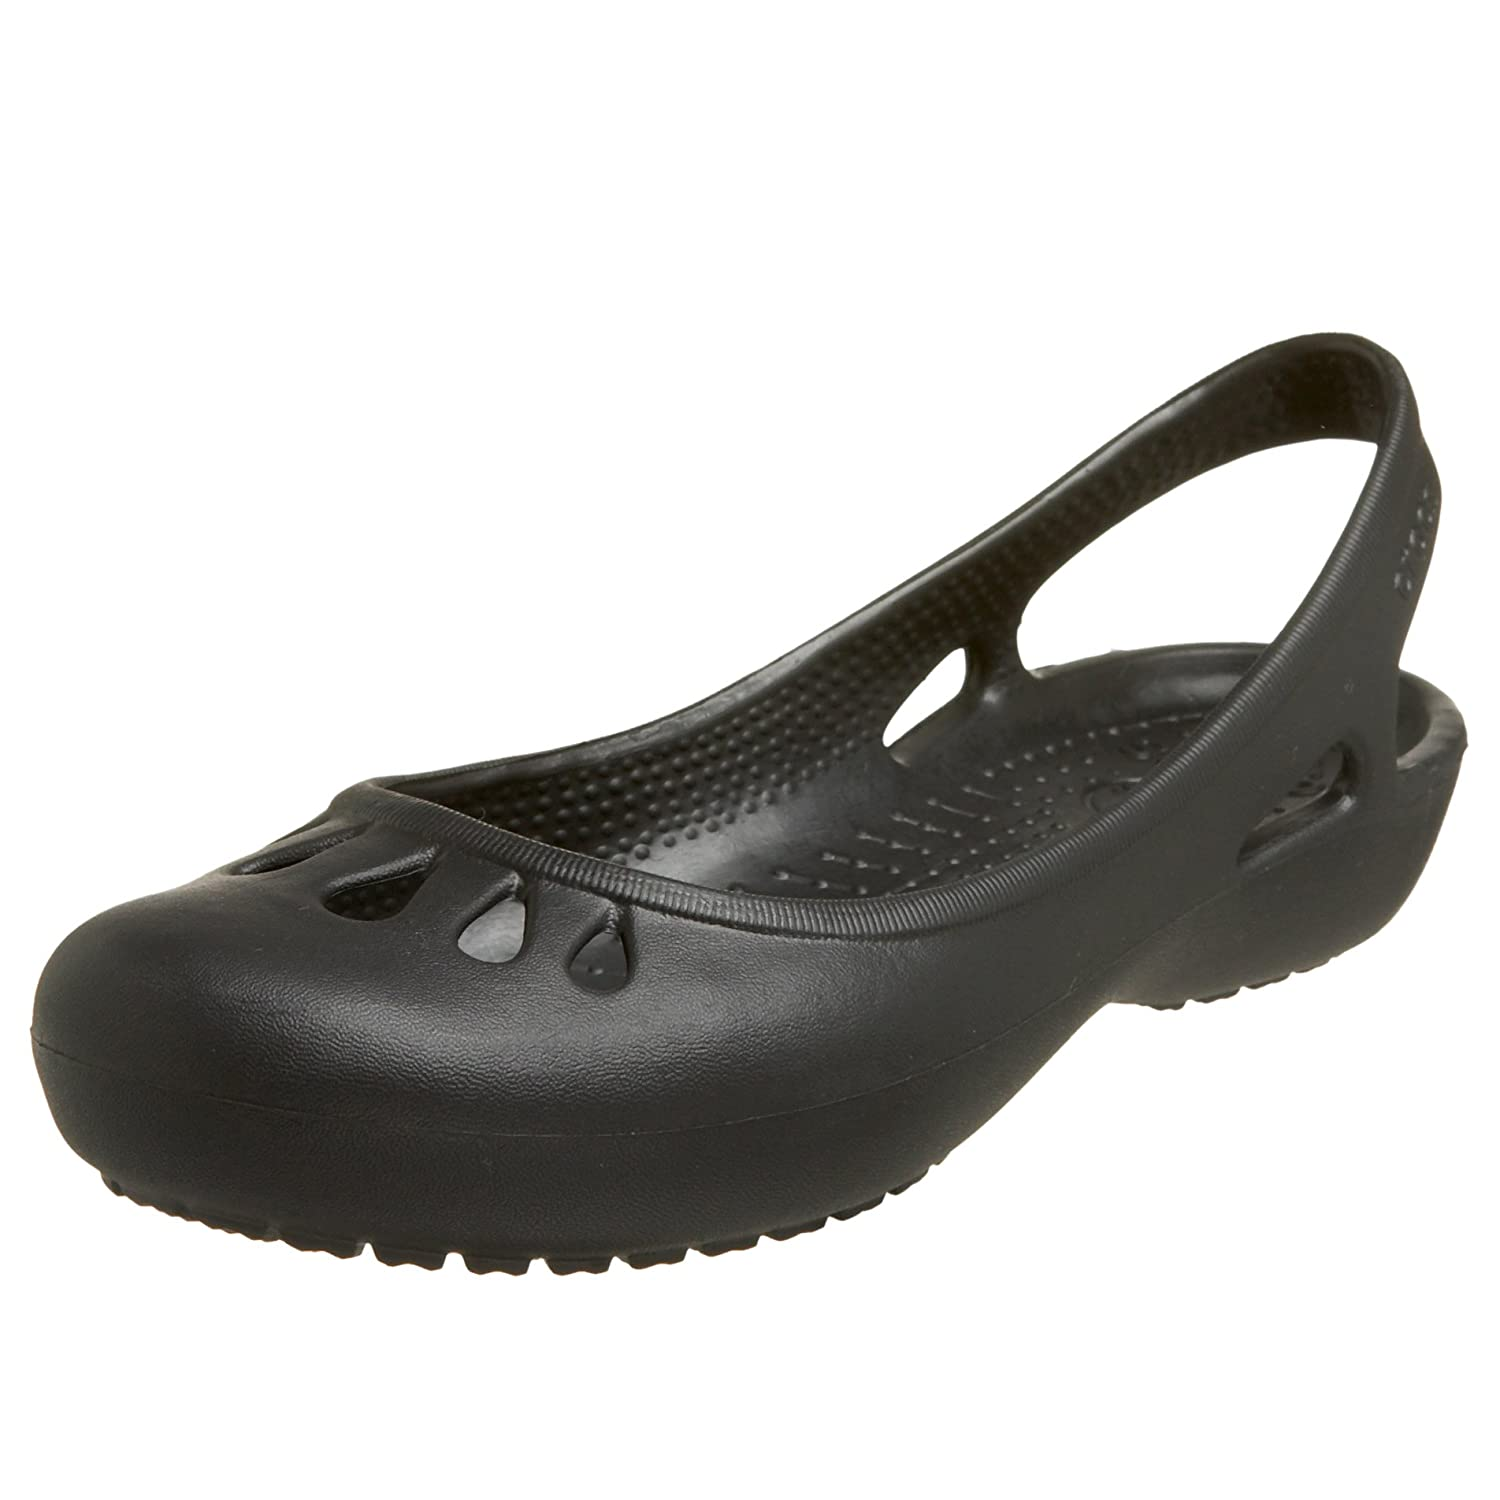 411181d97 crocs Women s Malindi Ballet Flats  Buy Online at Low Prices in India -  Amazon.in